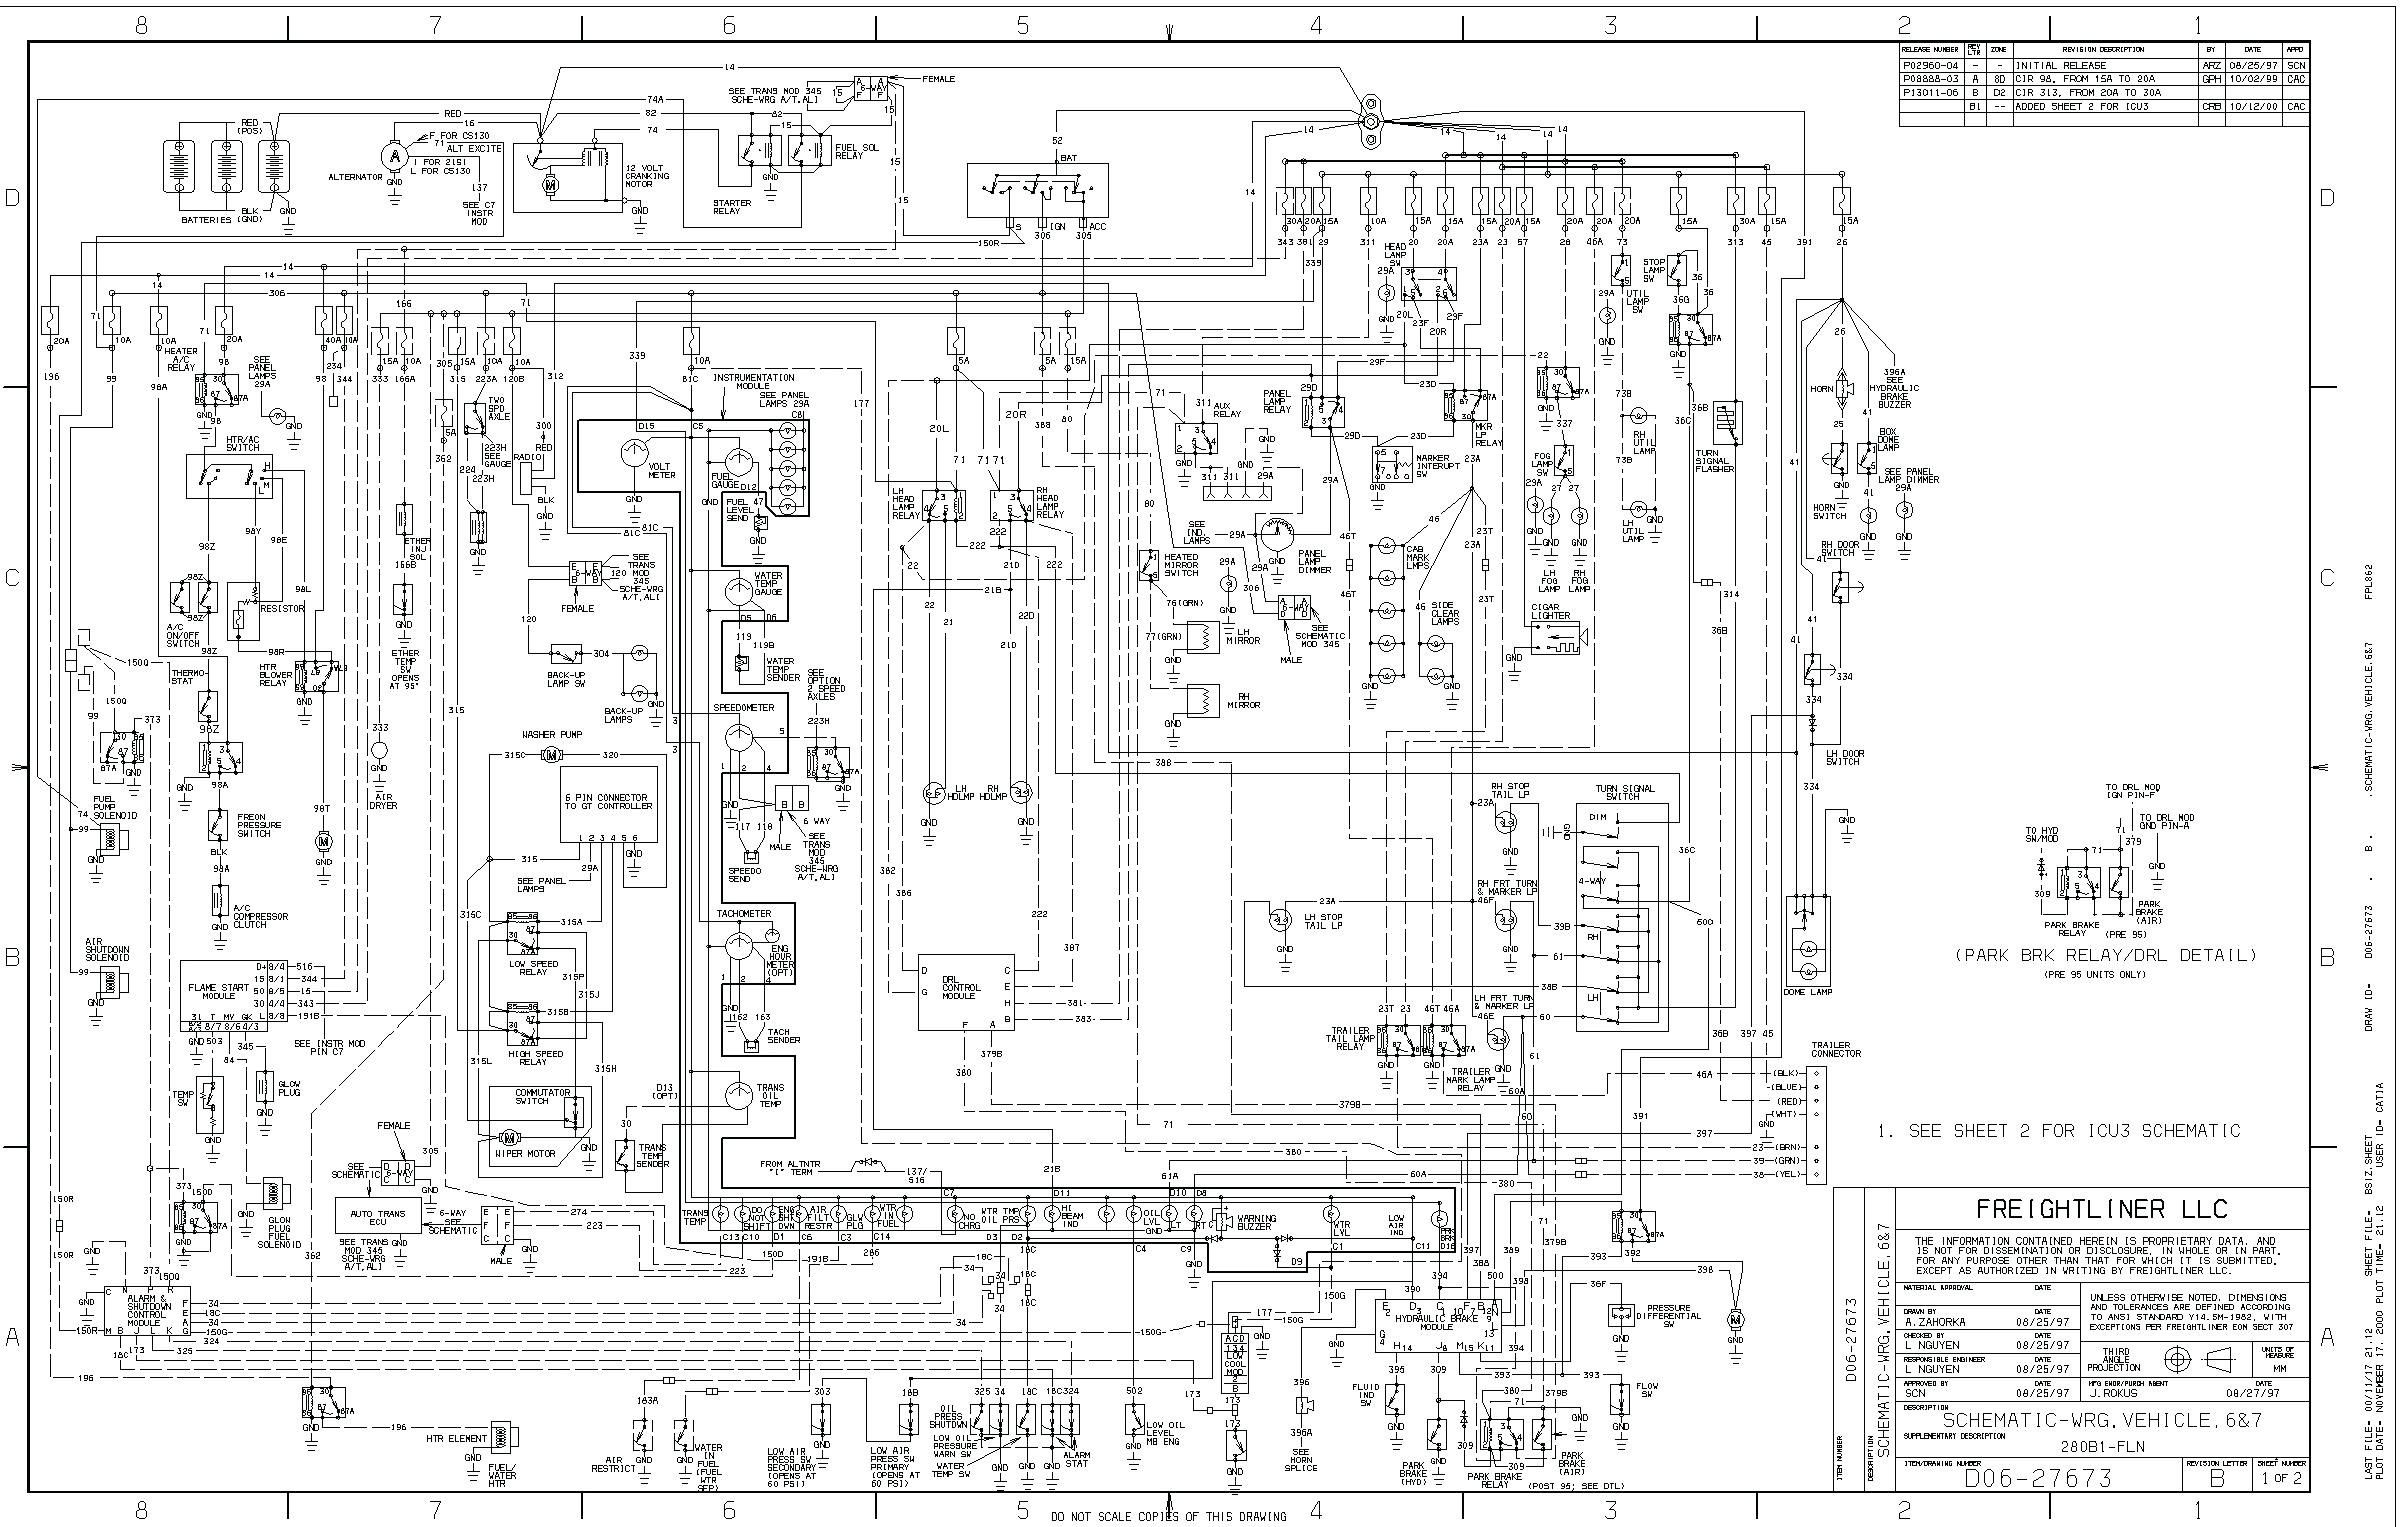 2007 Toyota Camry Engine Diagram 1996 22 96 Wiring Nickfayosub Of